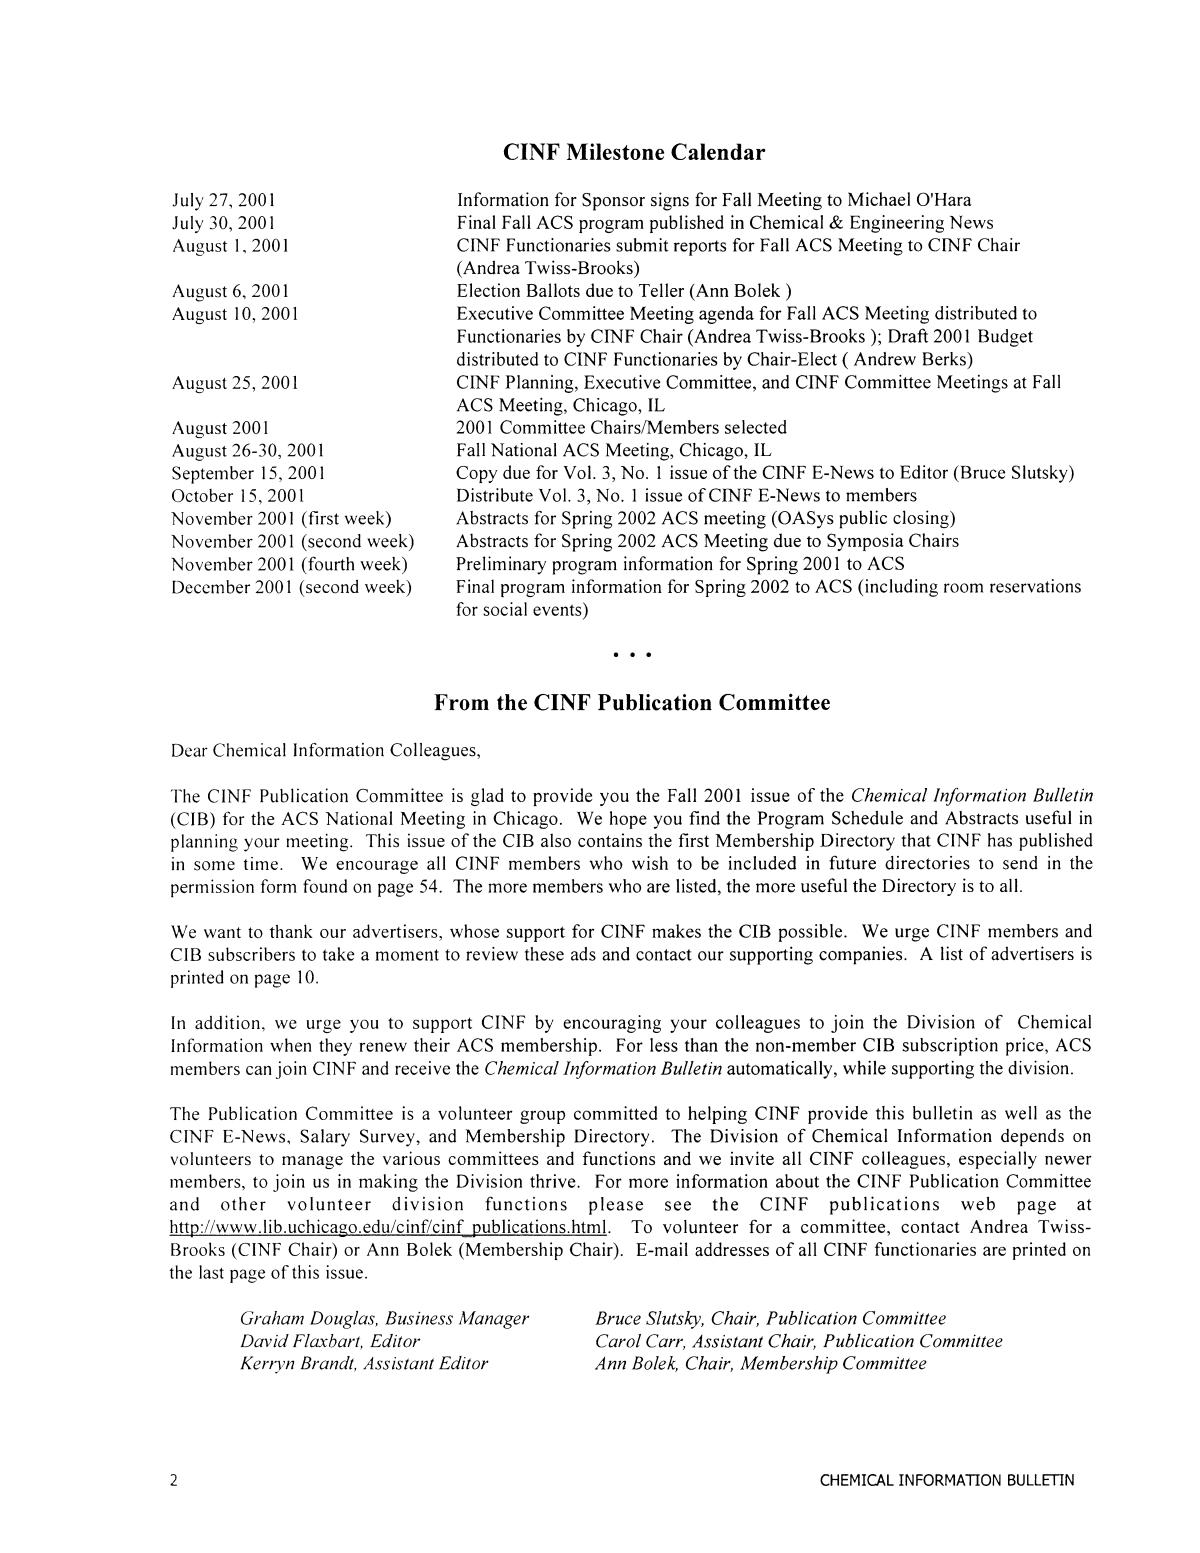 Chemical Information Bulletin, Volume 53 Number 2, Fall 2001                                                                                                      2